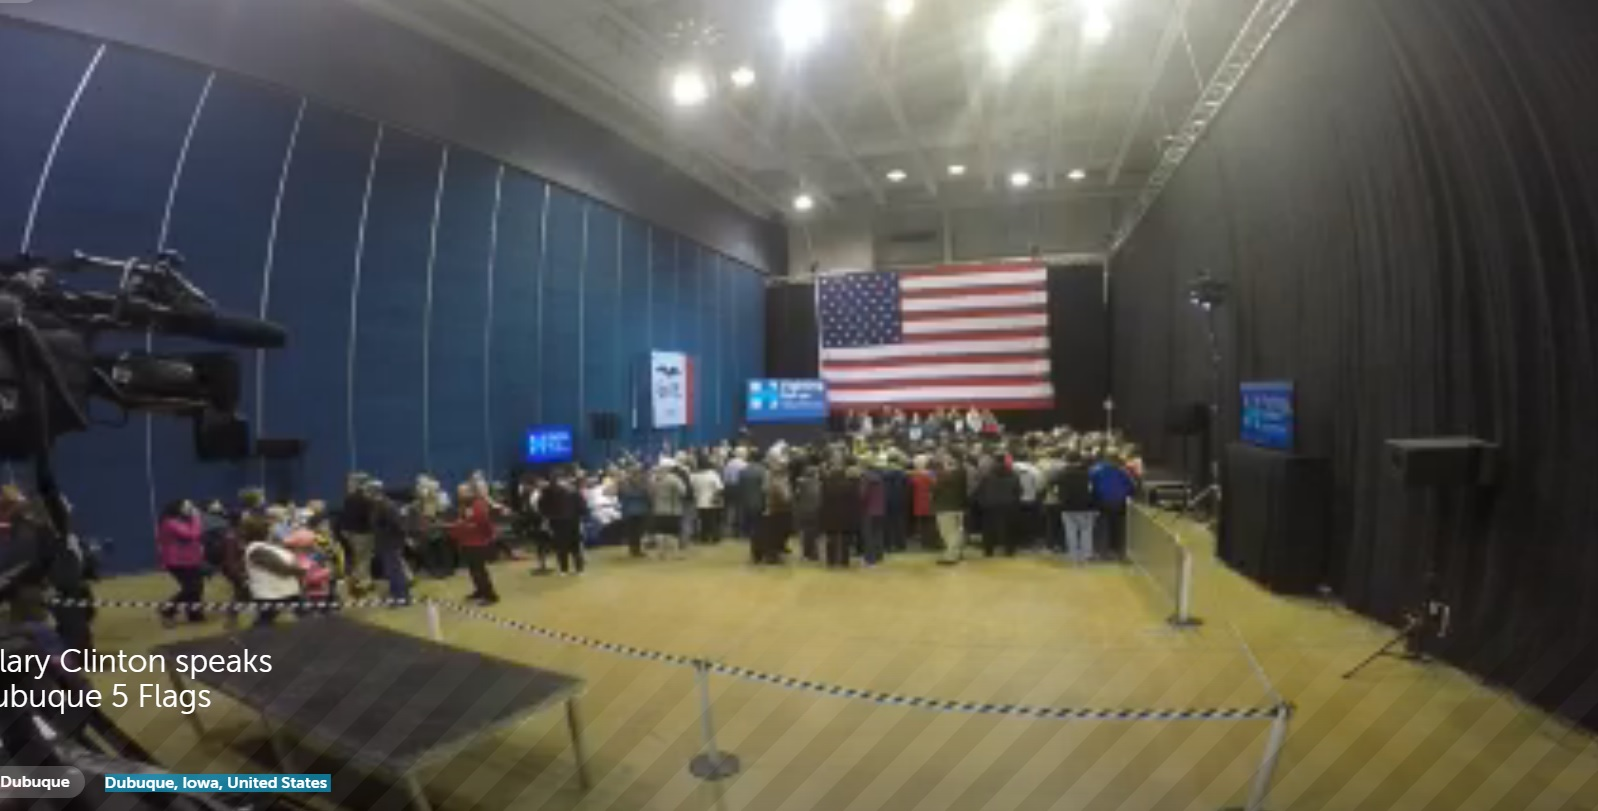 Three Days Before Caucus=> Hillary Clinton Stumps to Half-Empty Room in Dubuque, Iowa